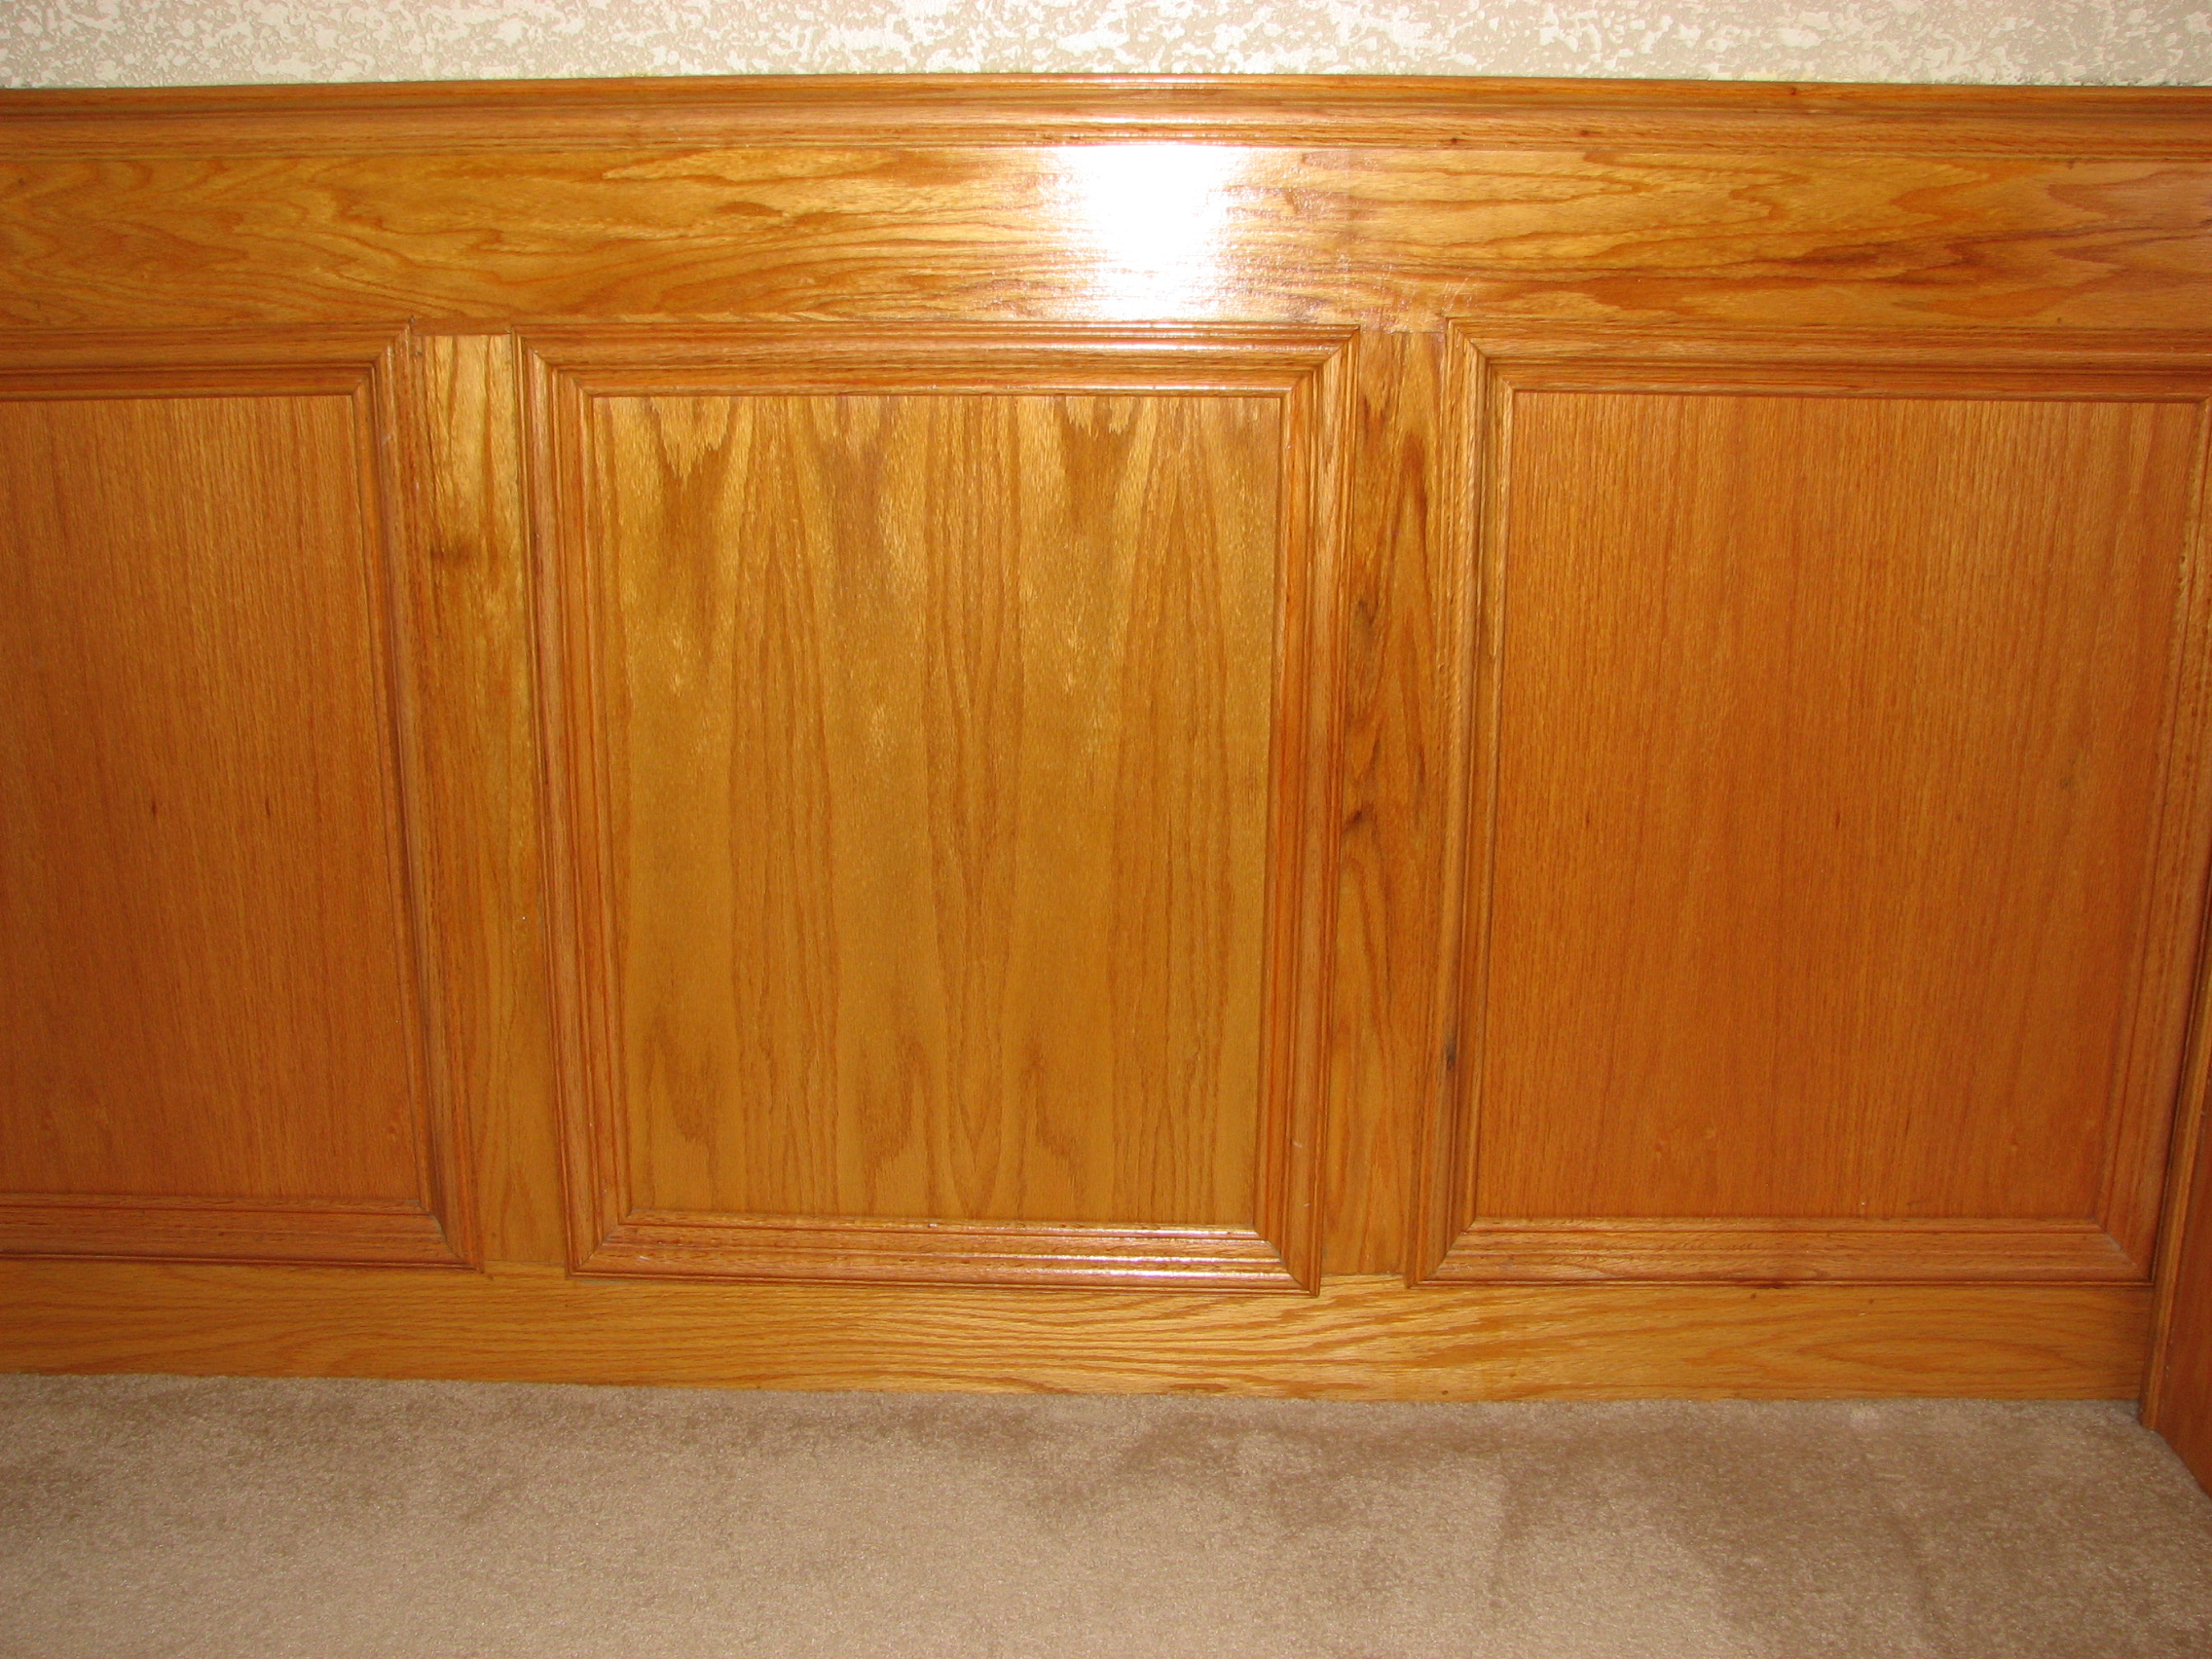 Wood Paneling Chair Rail Part - 17: Custom Wooden Ceilings · Desks And Workstations · Chair Rails And Raised  Panel Walls ...